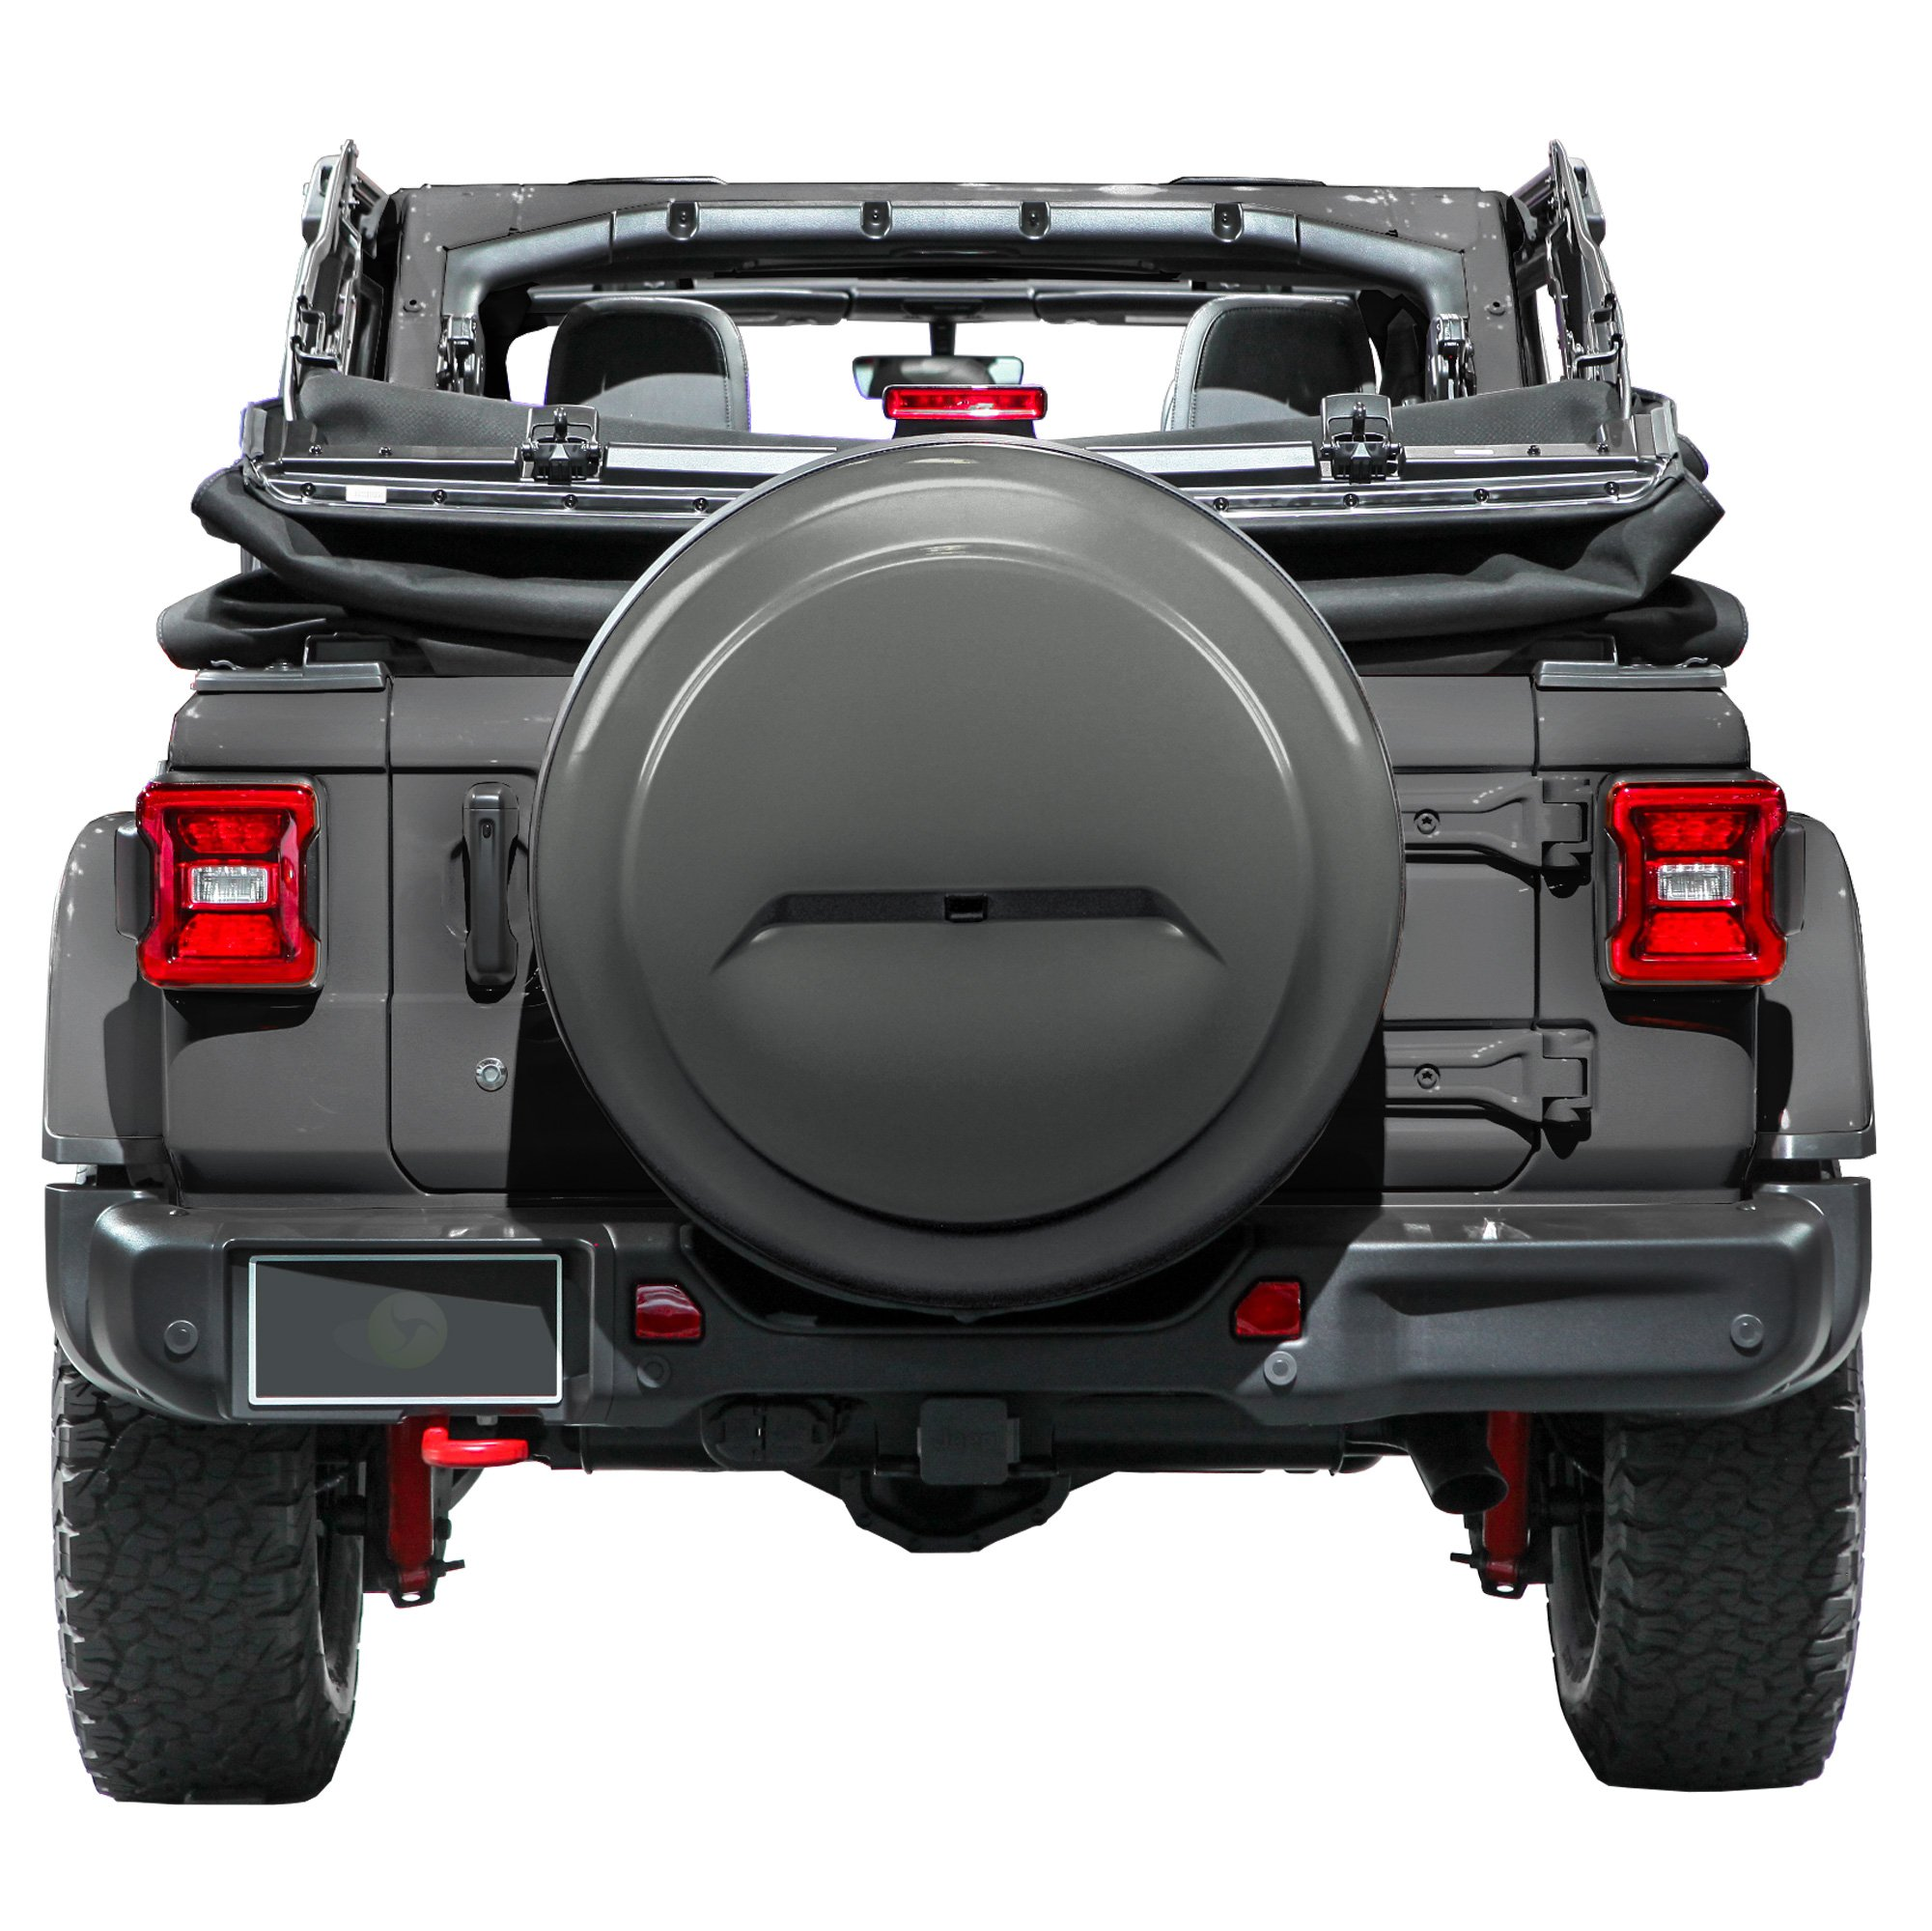 Boomerang 2018 Jeep Wrangler Rubicon JL & JLU - 33'' Color Matched Rigid Tire Cover (Plastic Face & Vinyl Band) - Granite Crystal Metallic by Boomerang (Image #1)